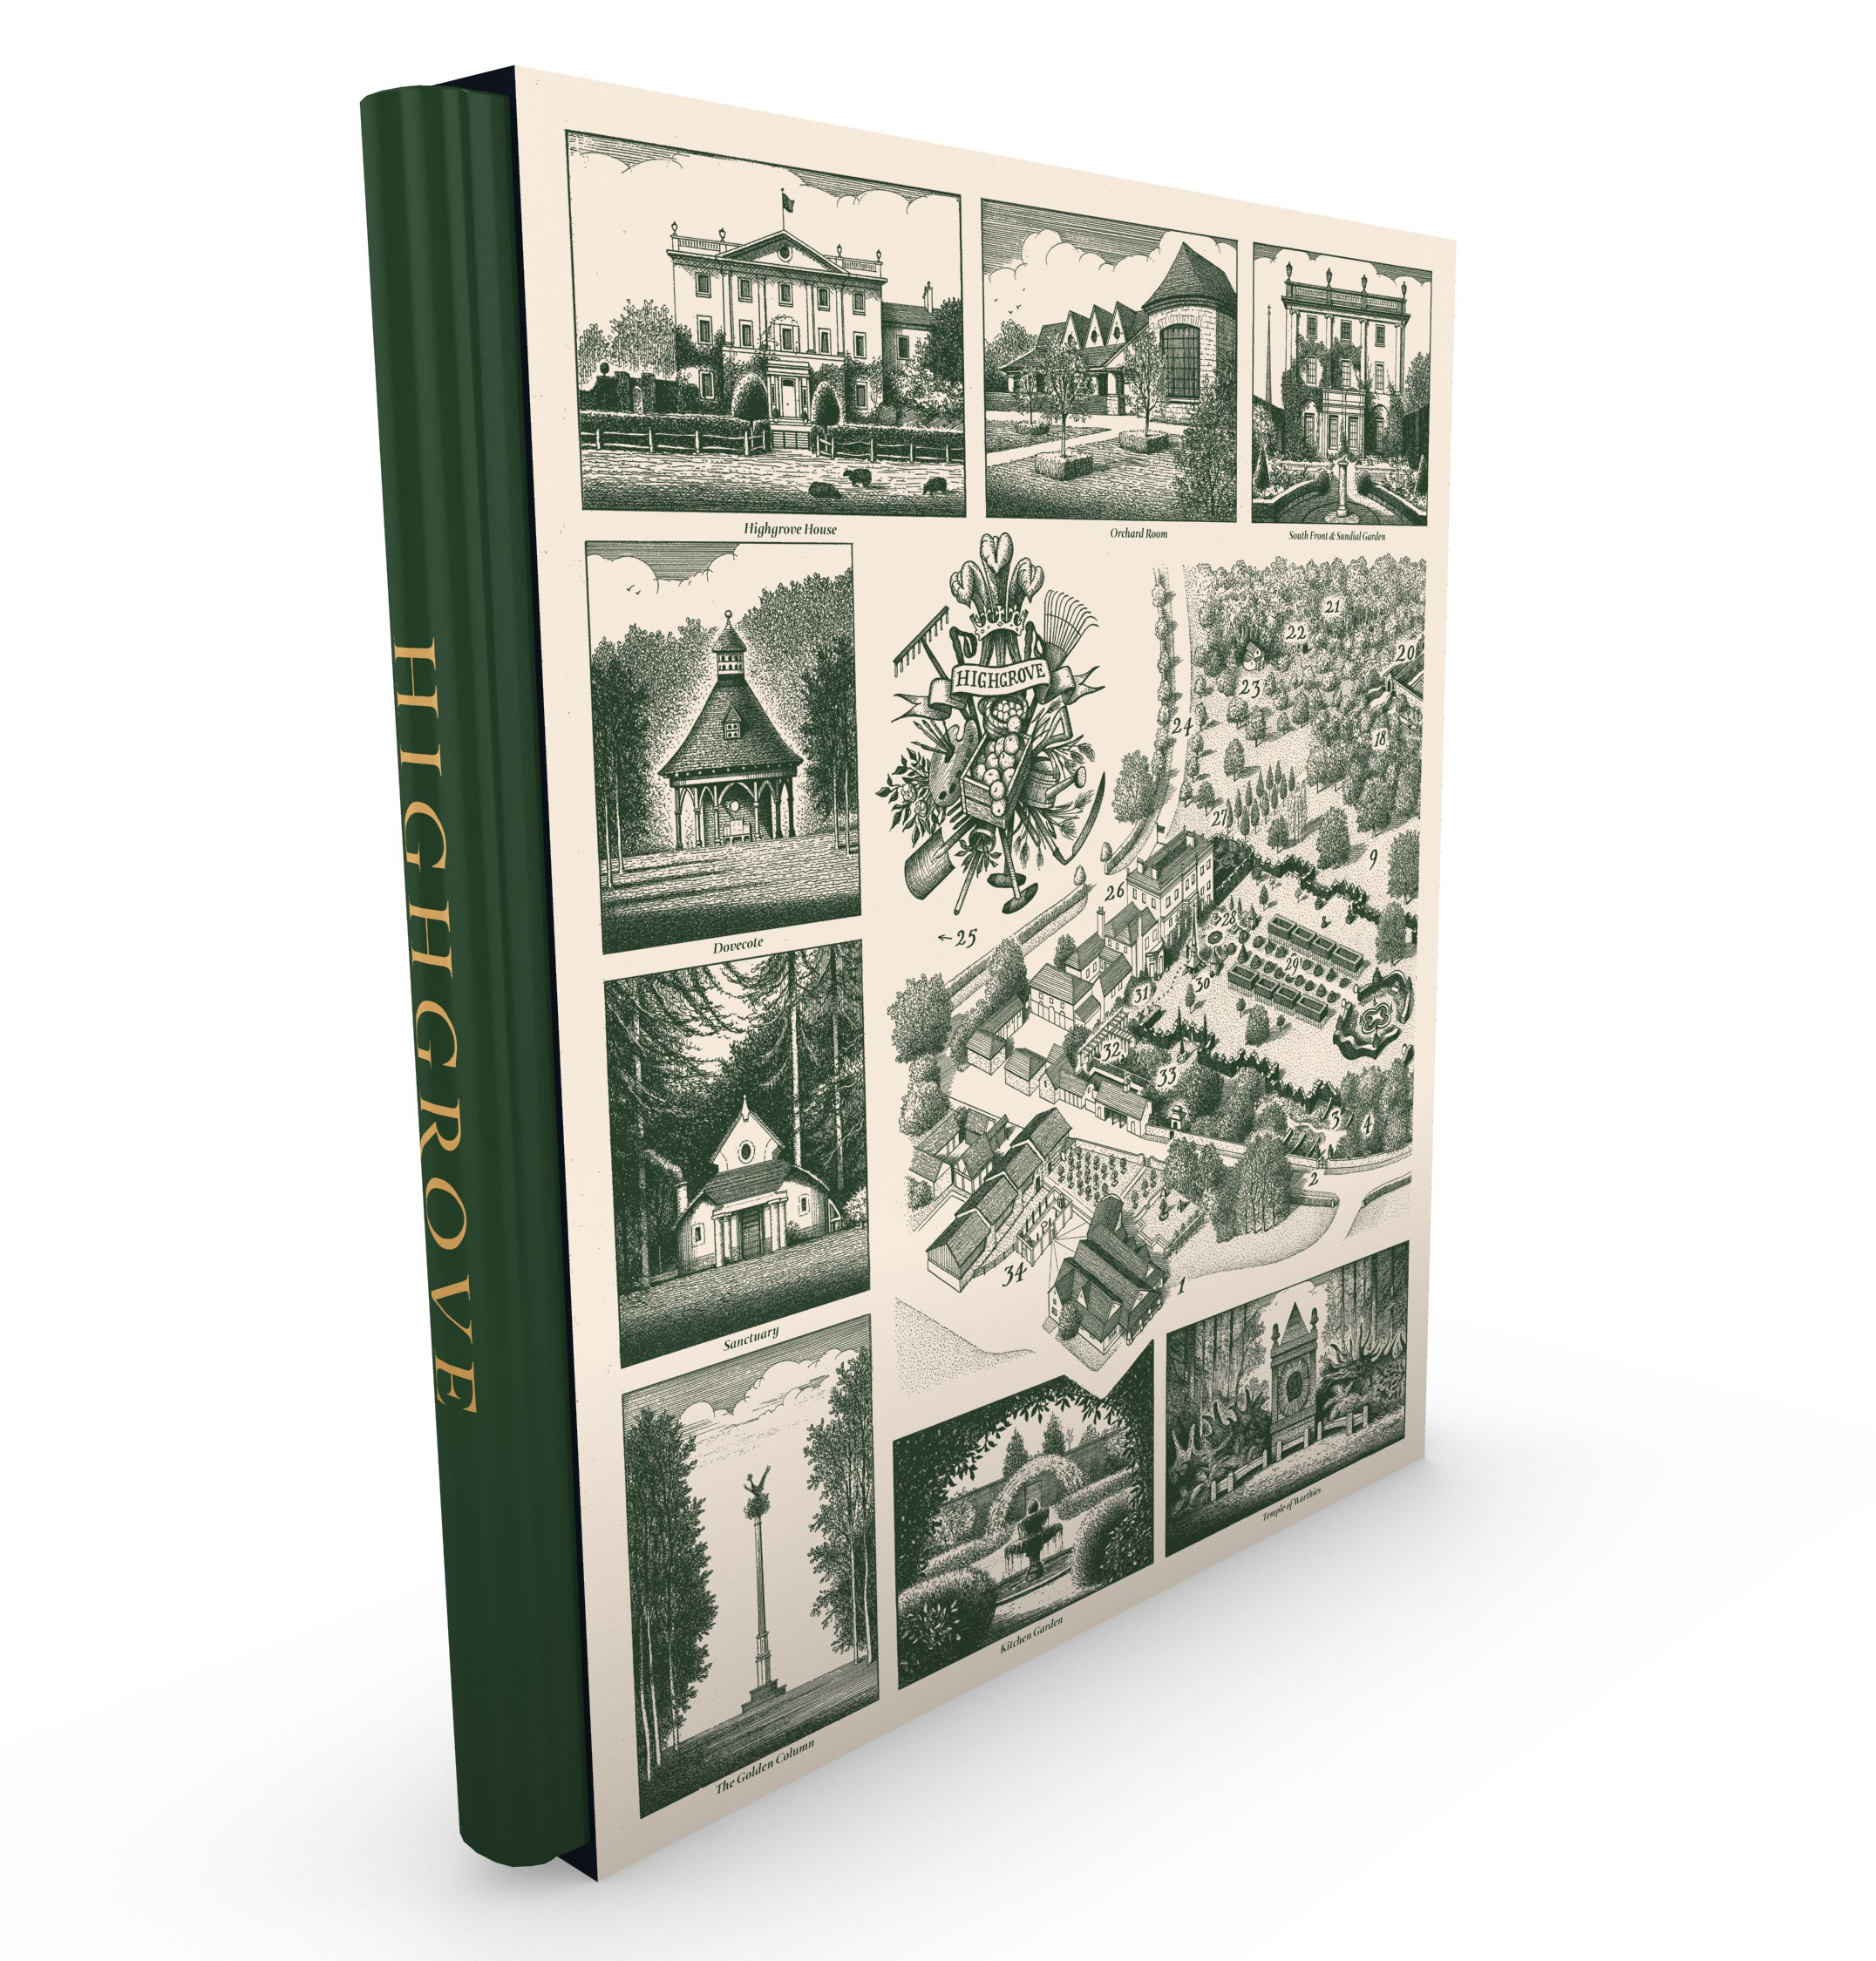 Jonathan's map of Highgrove appears on the cover of a limited-edition, leather-bound book written by Prince Charles -  Available here from Highgrove Shop websitepriced £500.